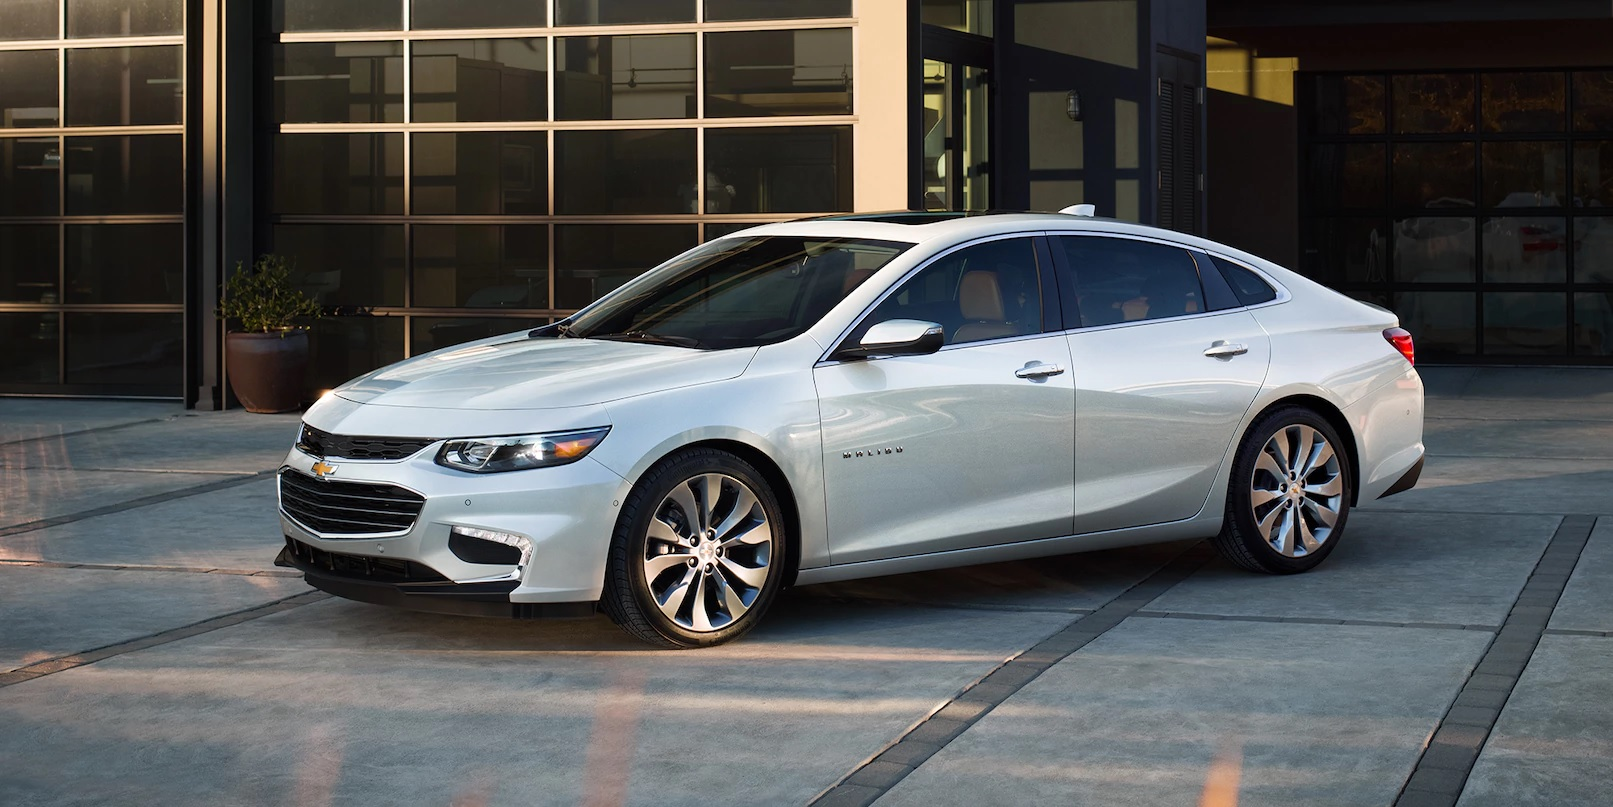 2018 Chevrolet Malibu for Sale in Jackson, MN